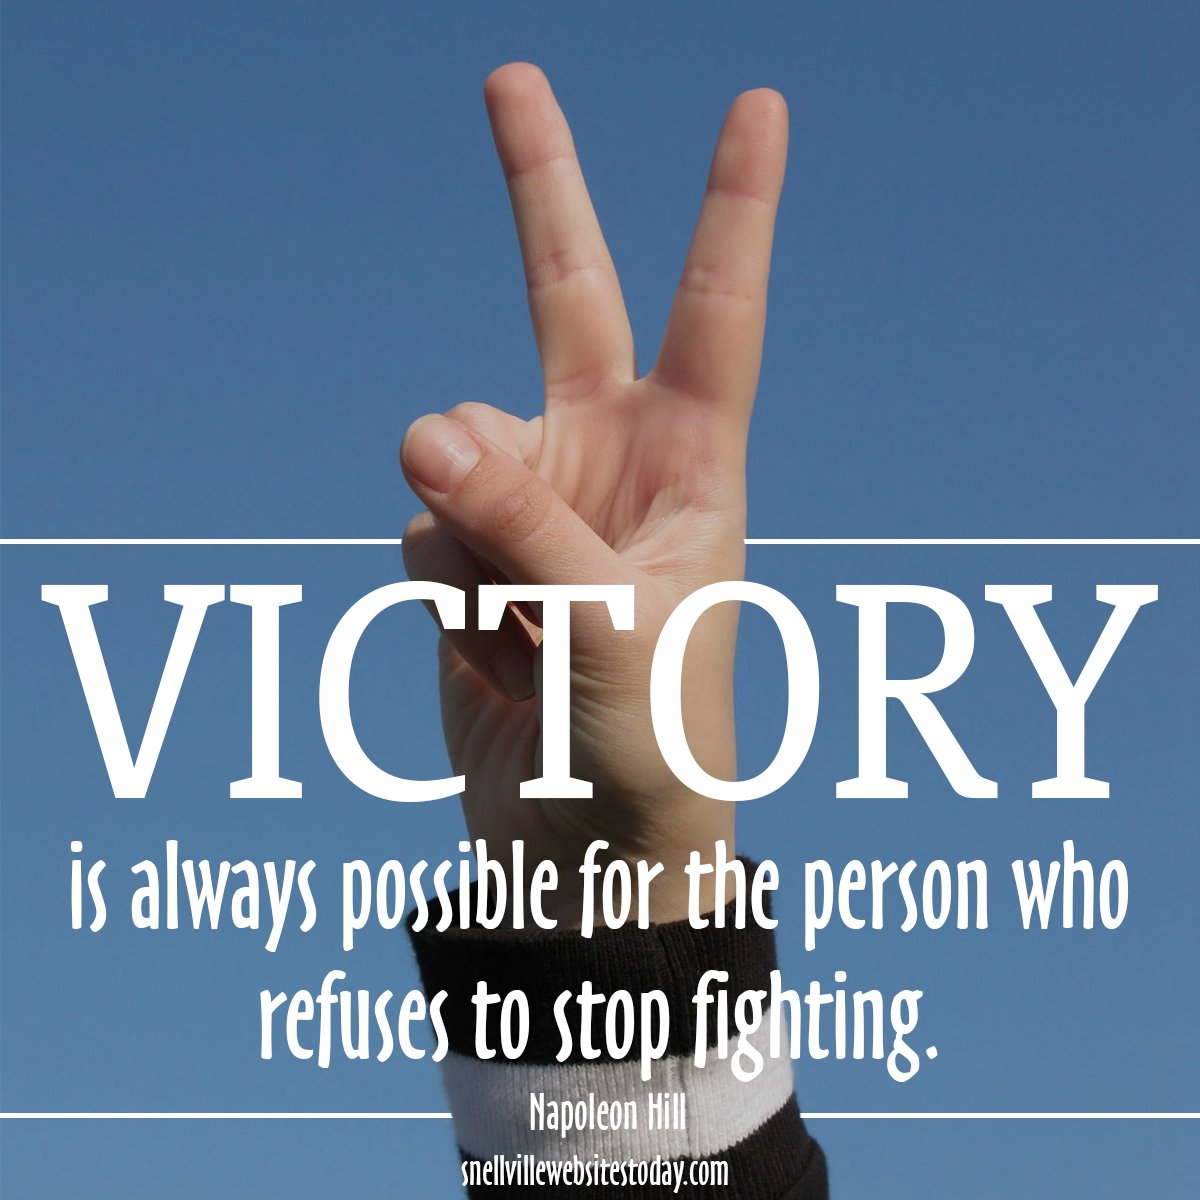 Small Business Websites - Victory is always possible